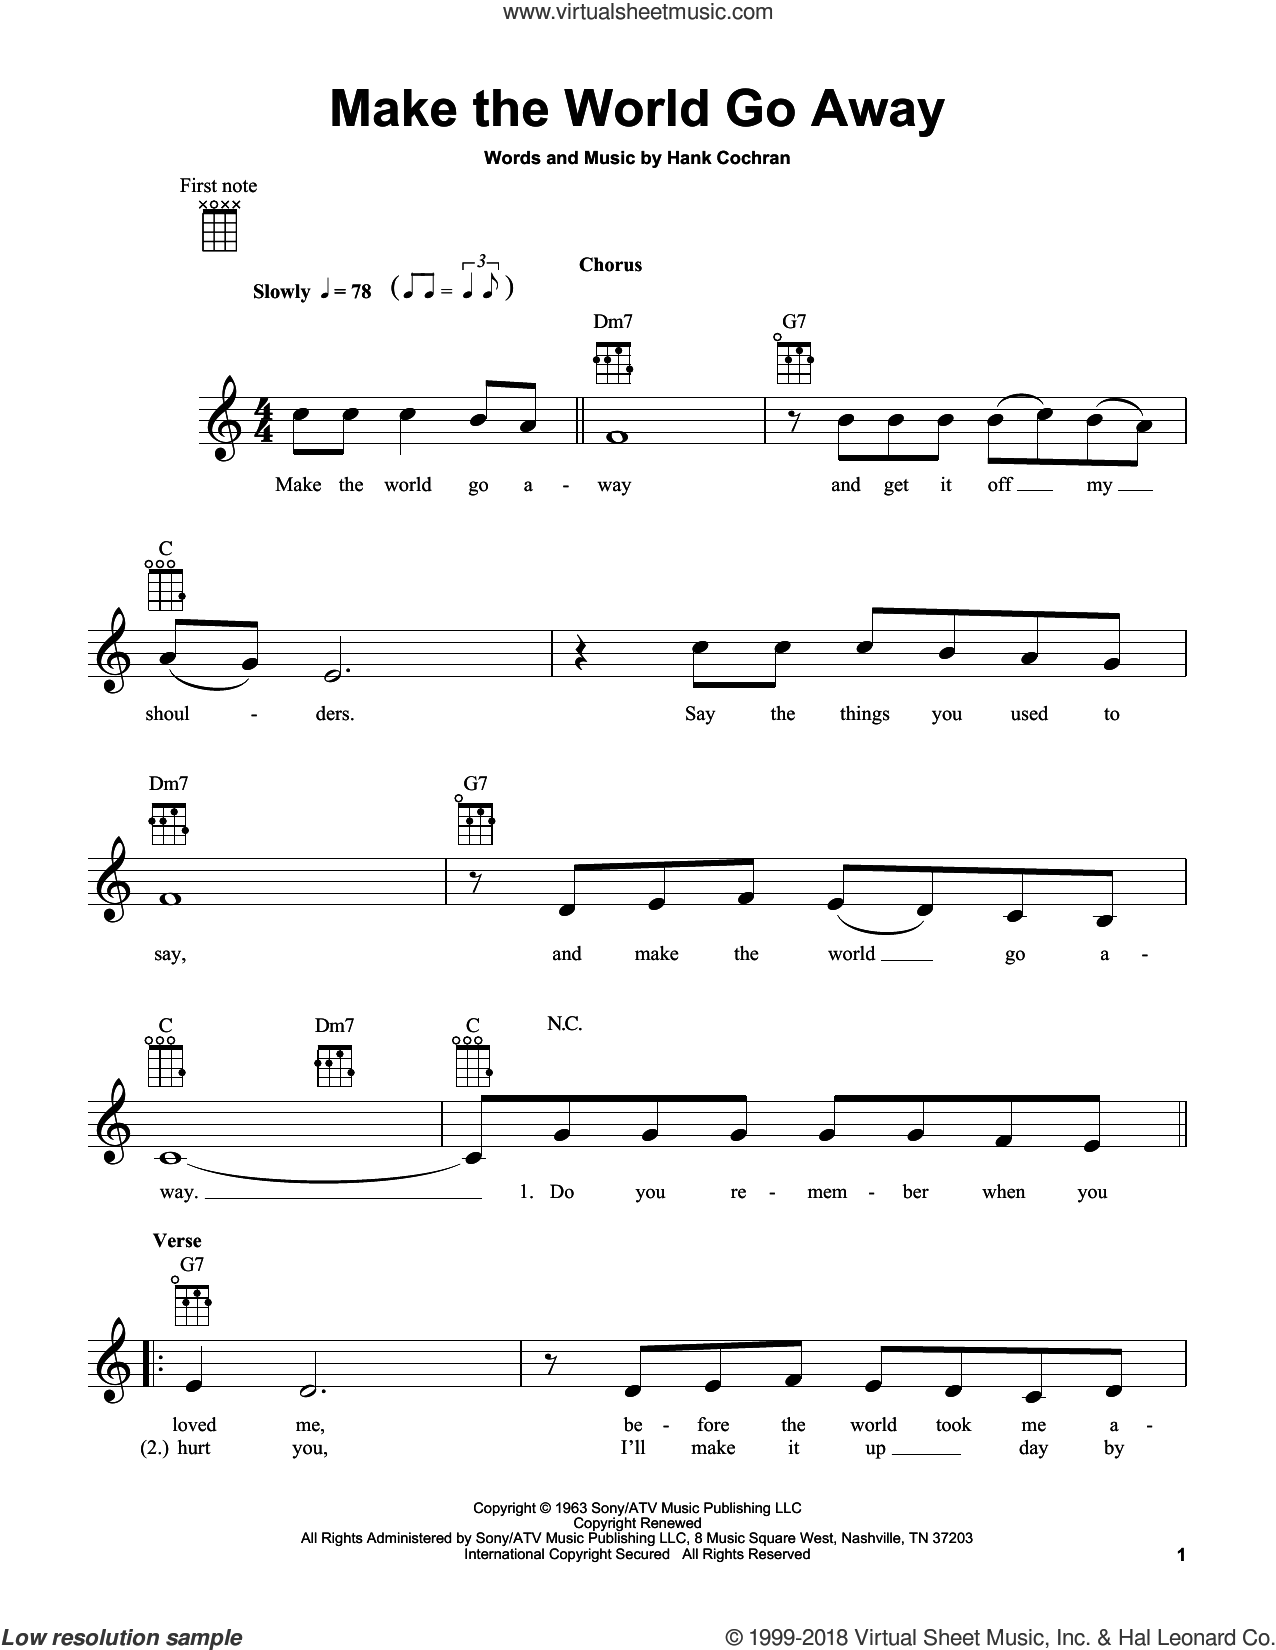 Make The World Go Away sheet music for ukulele by Hank Cochran